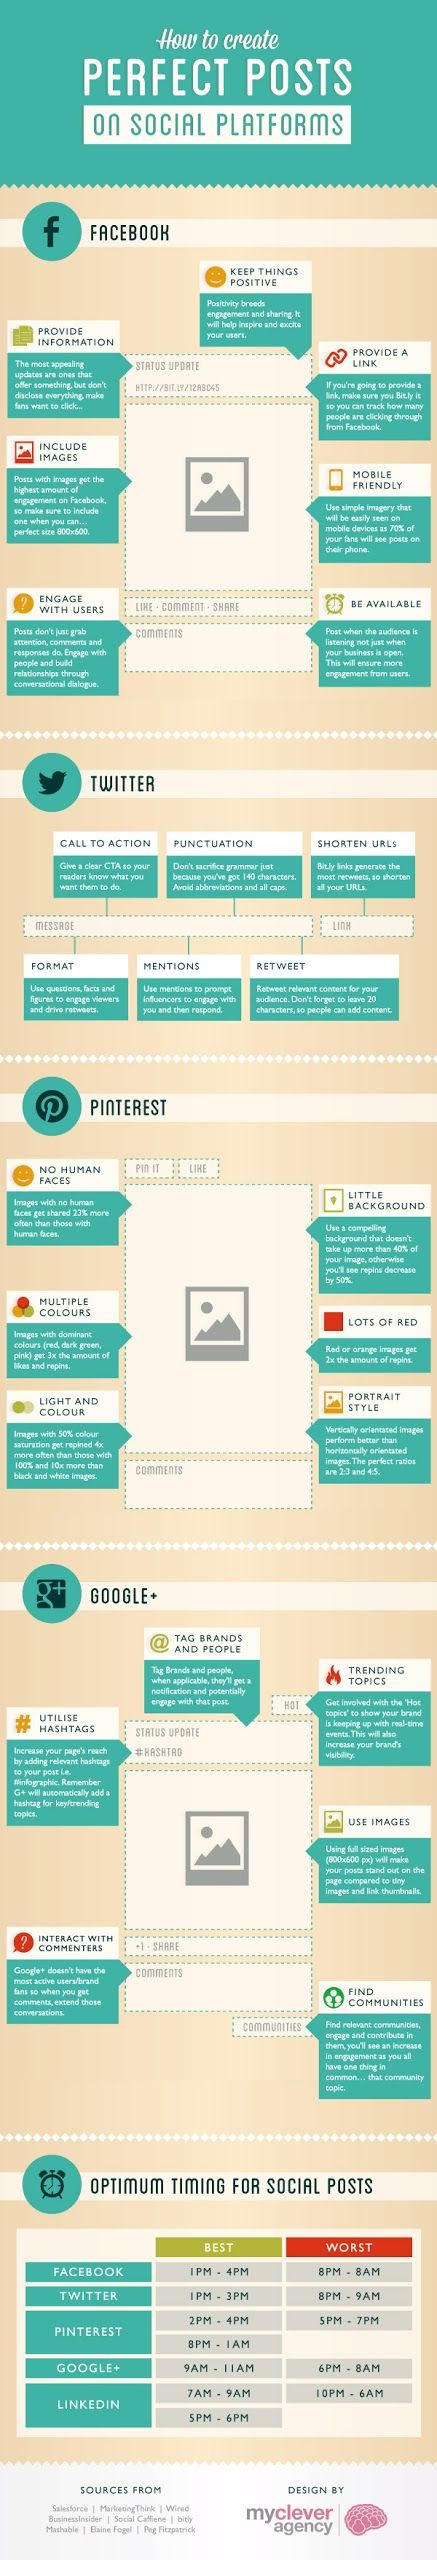 How to Create the Perfect Social Media Post [Infographic] image YYqzjBfk5eIp4ISBX4dviWlPokmr2rO7XGA M rFzvGjiE5LX3CRXDjK7yW23rUkx0WcH4 gmh3e...